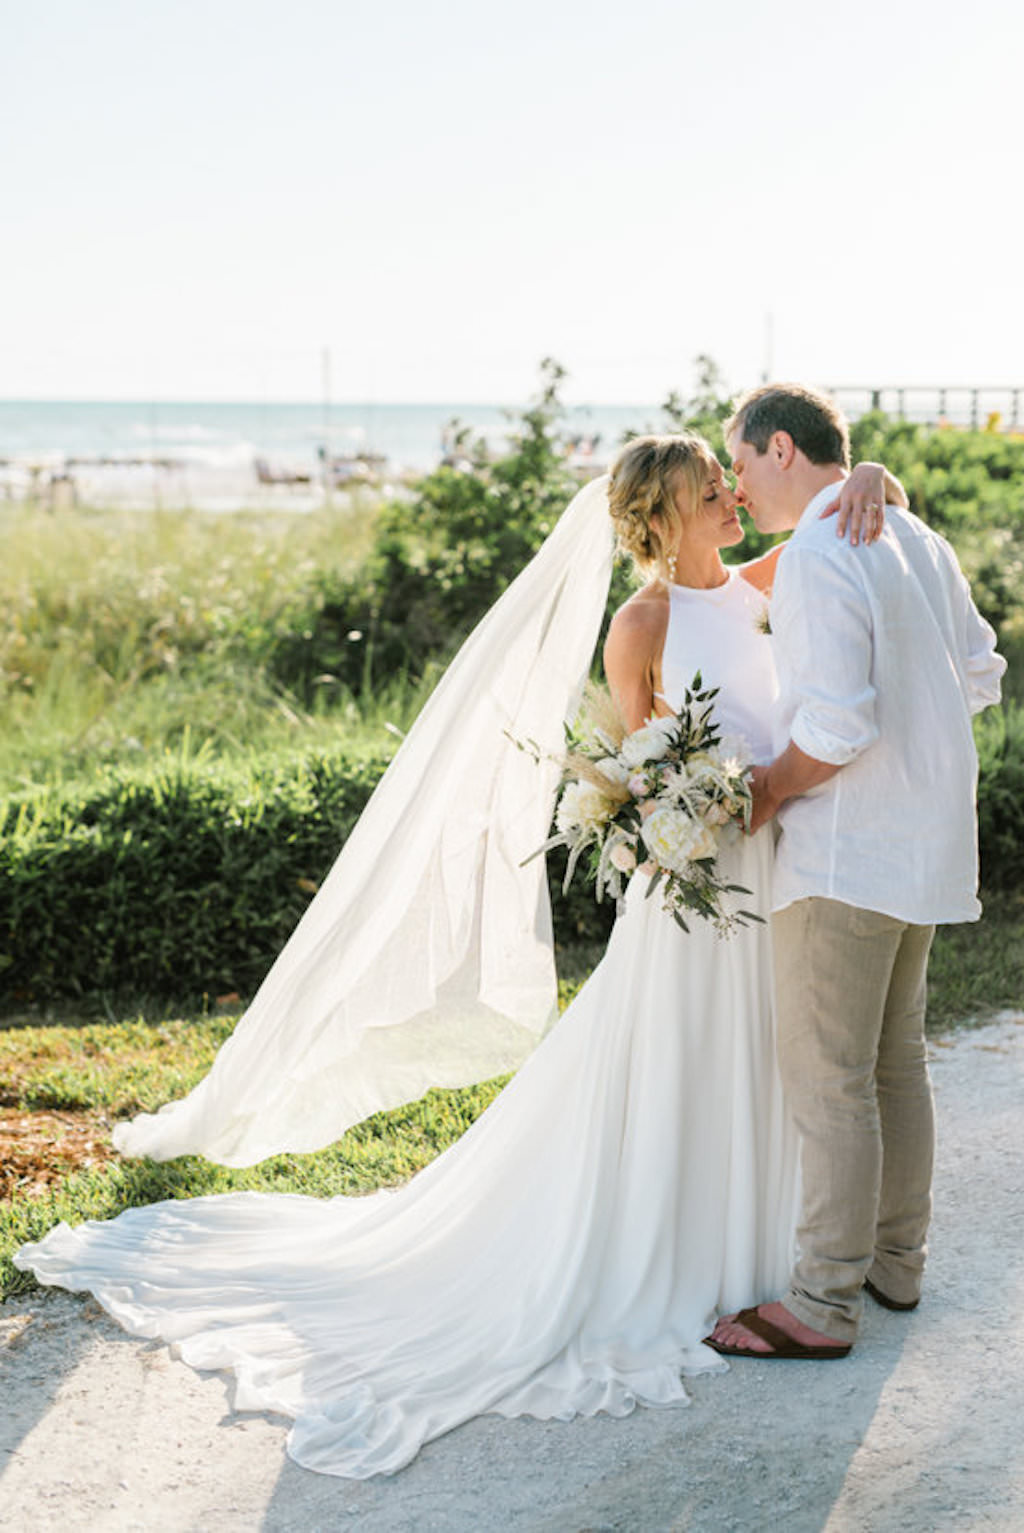 Sarasota Florida Destination Bride and Groom Beachfront Casual Wedding Attire with Bride in White Flowy Dress with Veil Blowing in Wind | Resort at Longboat Key Club